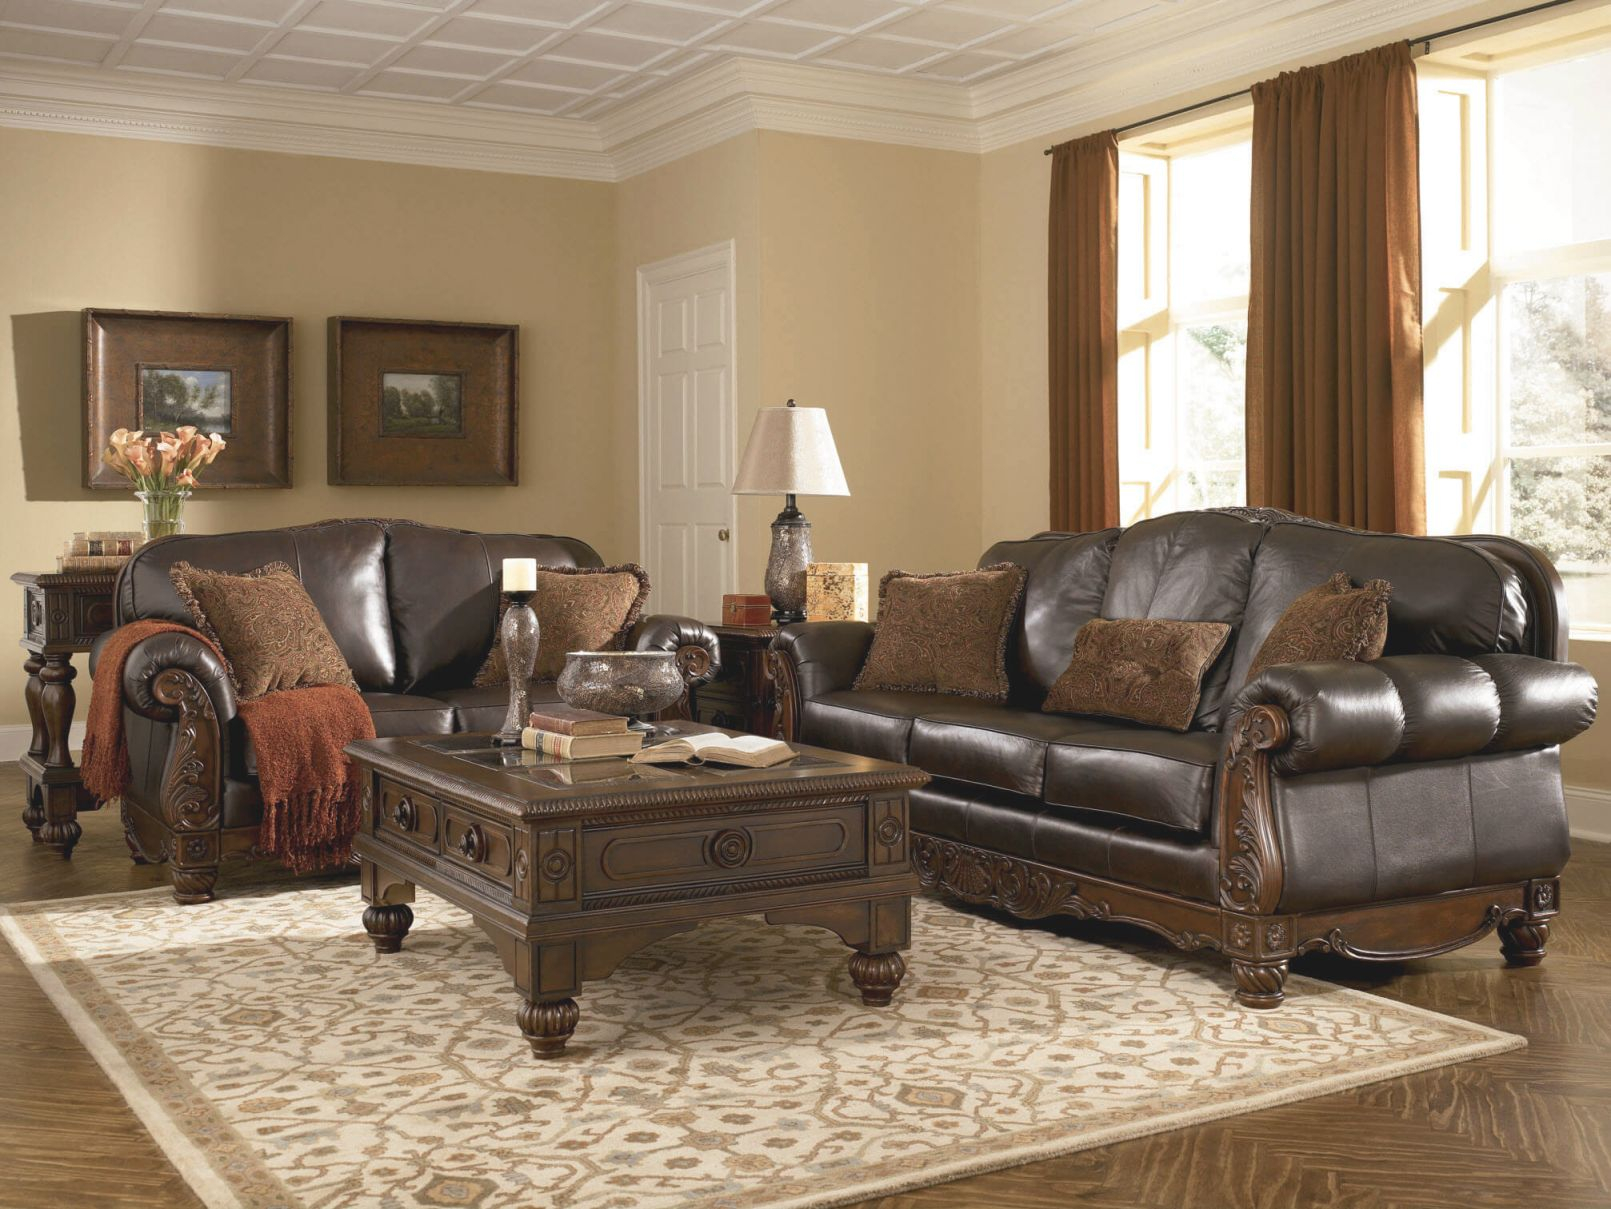 Lovely Ashley Furniture Living Room Sets 999 - Awesome Decors